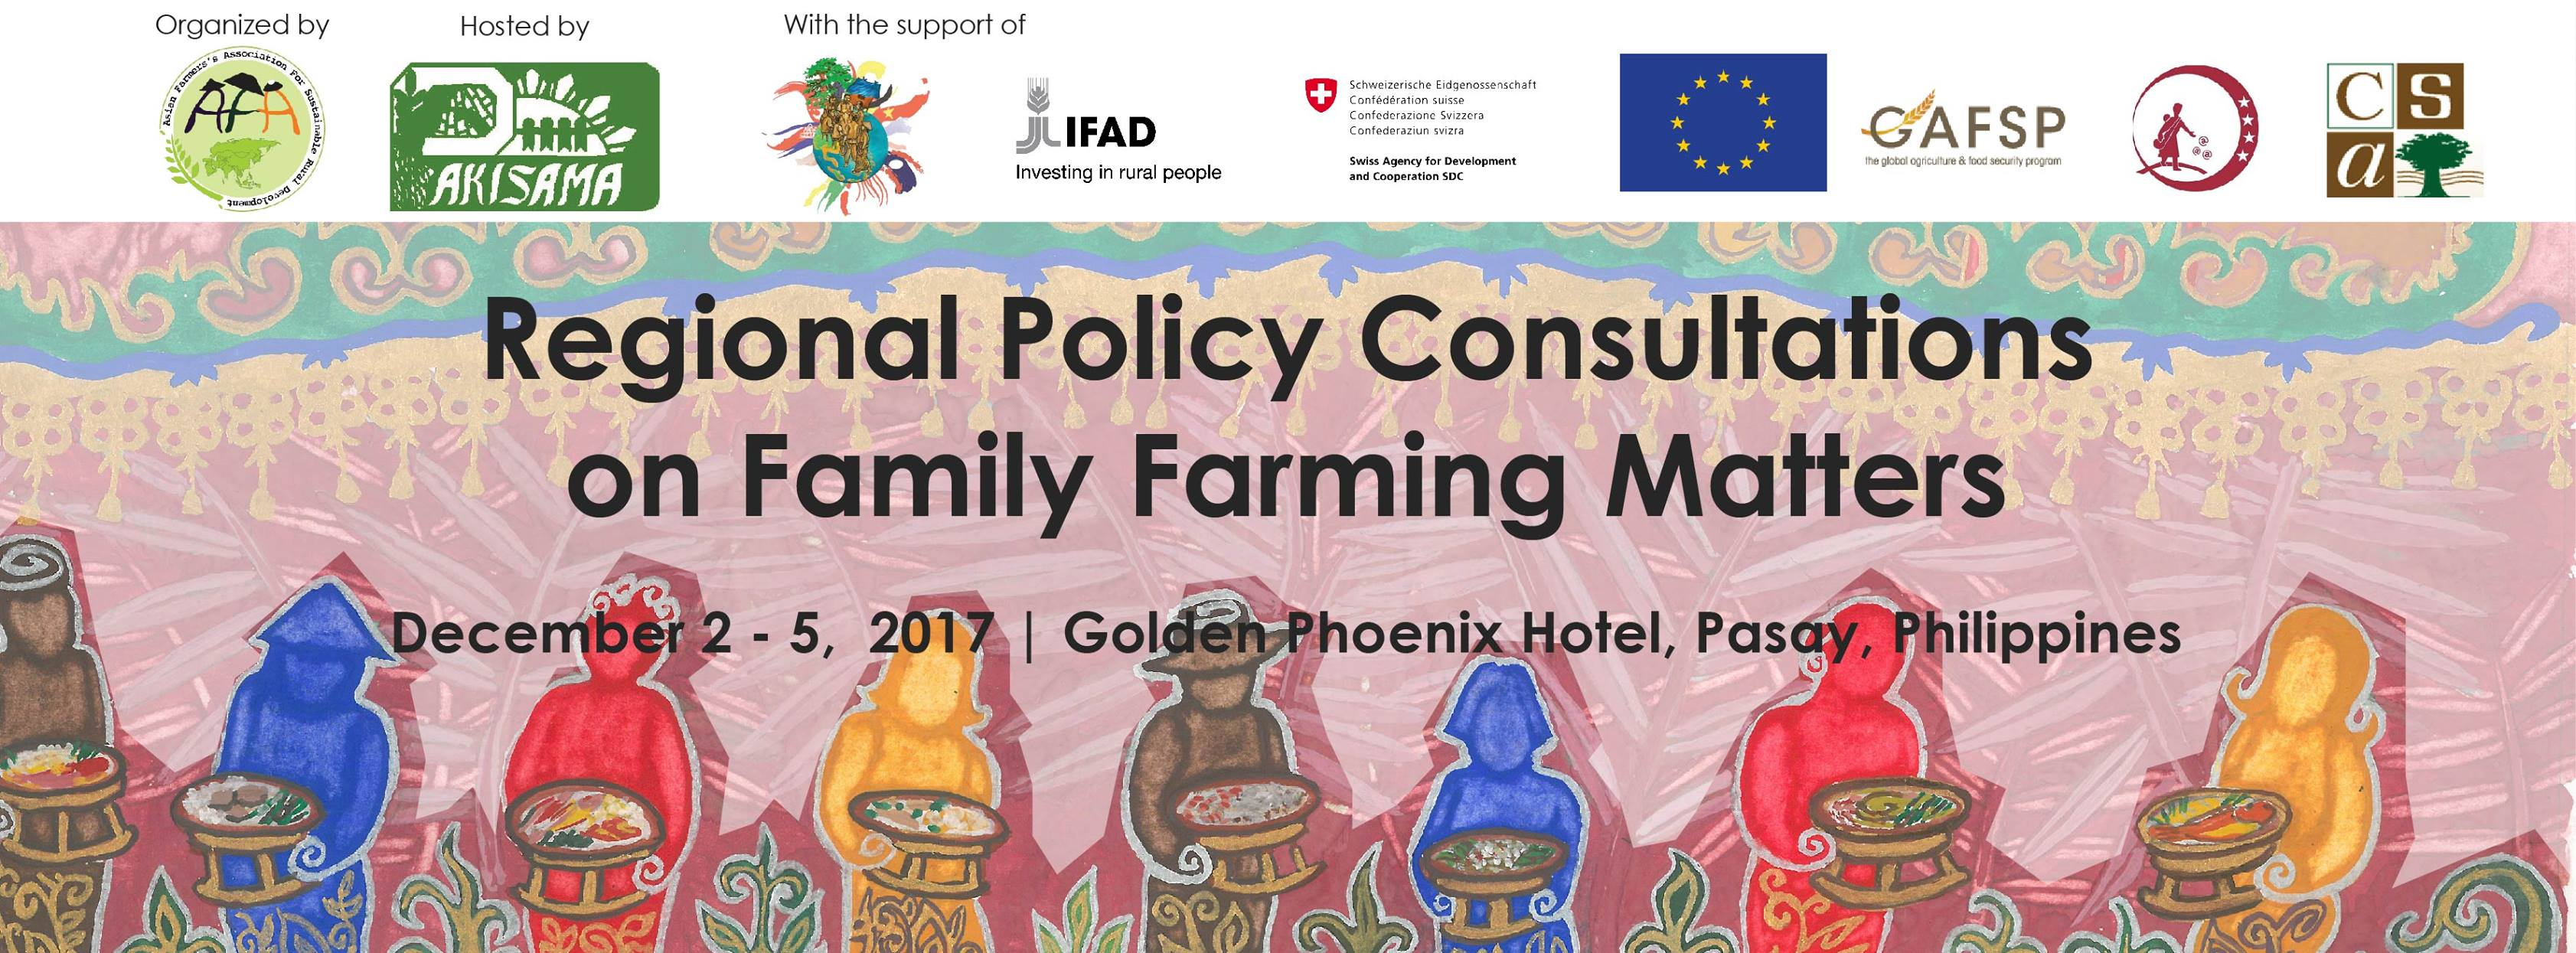 Regional Policy Consultations on Family Farming Matter